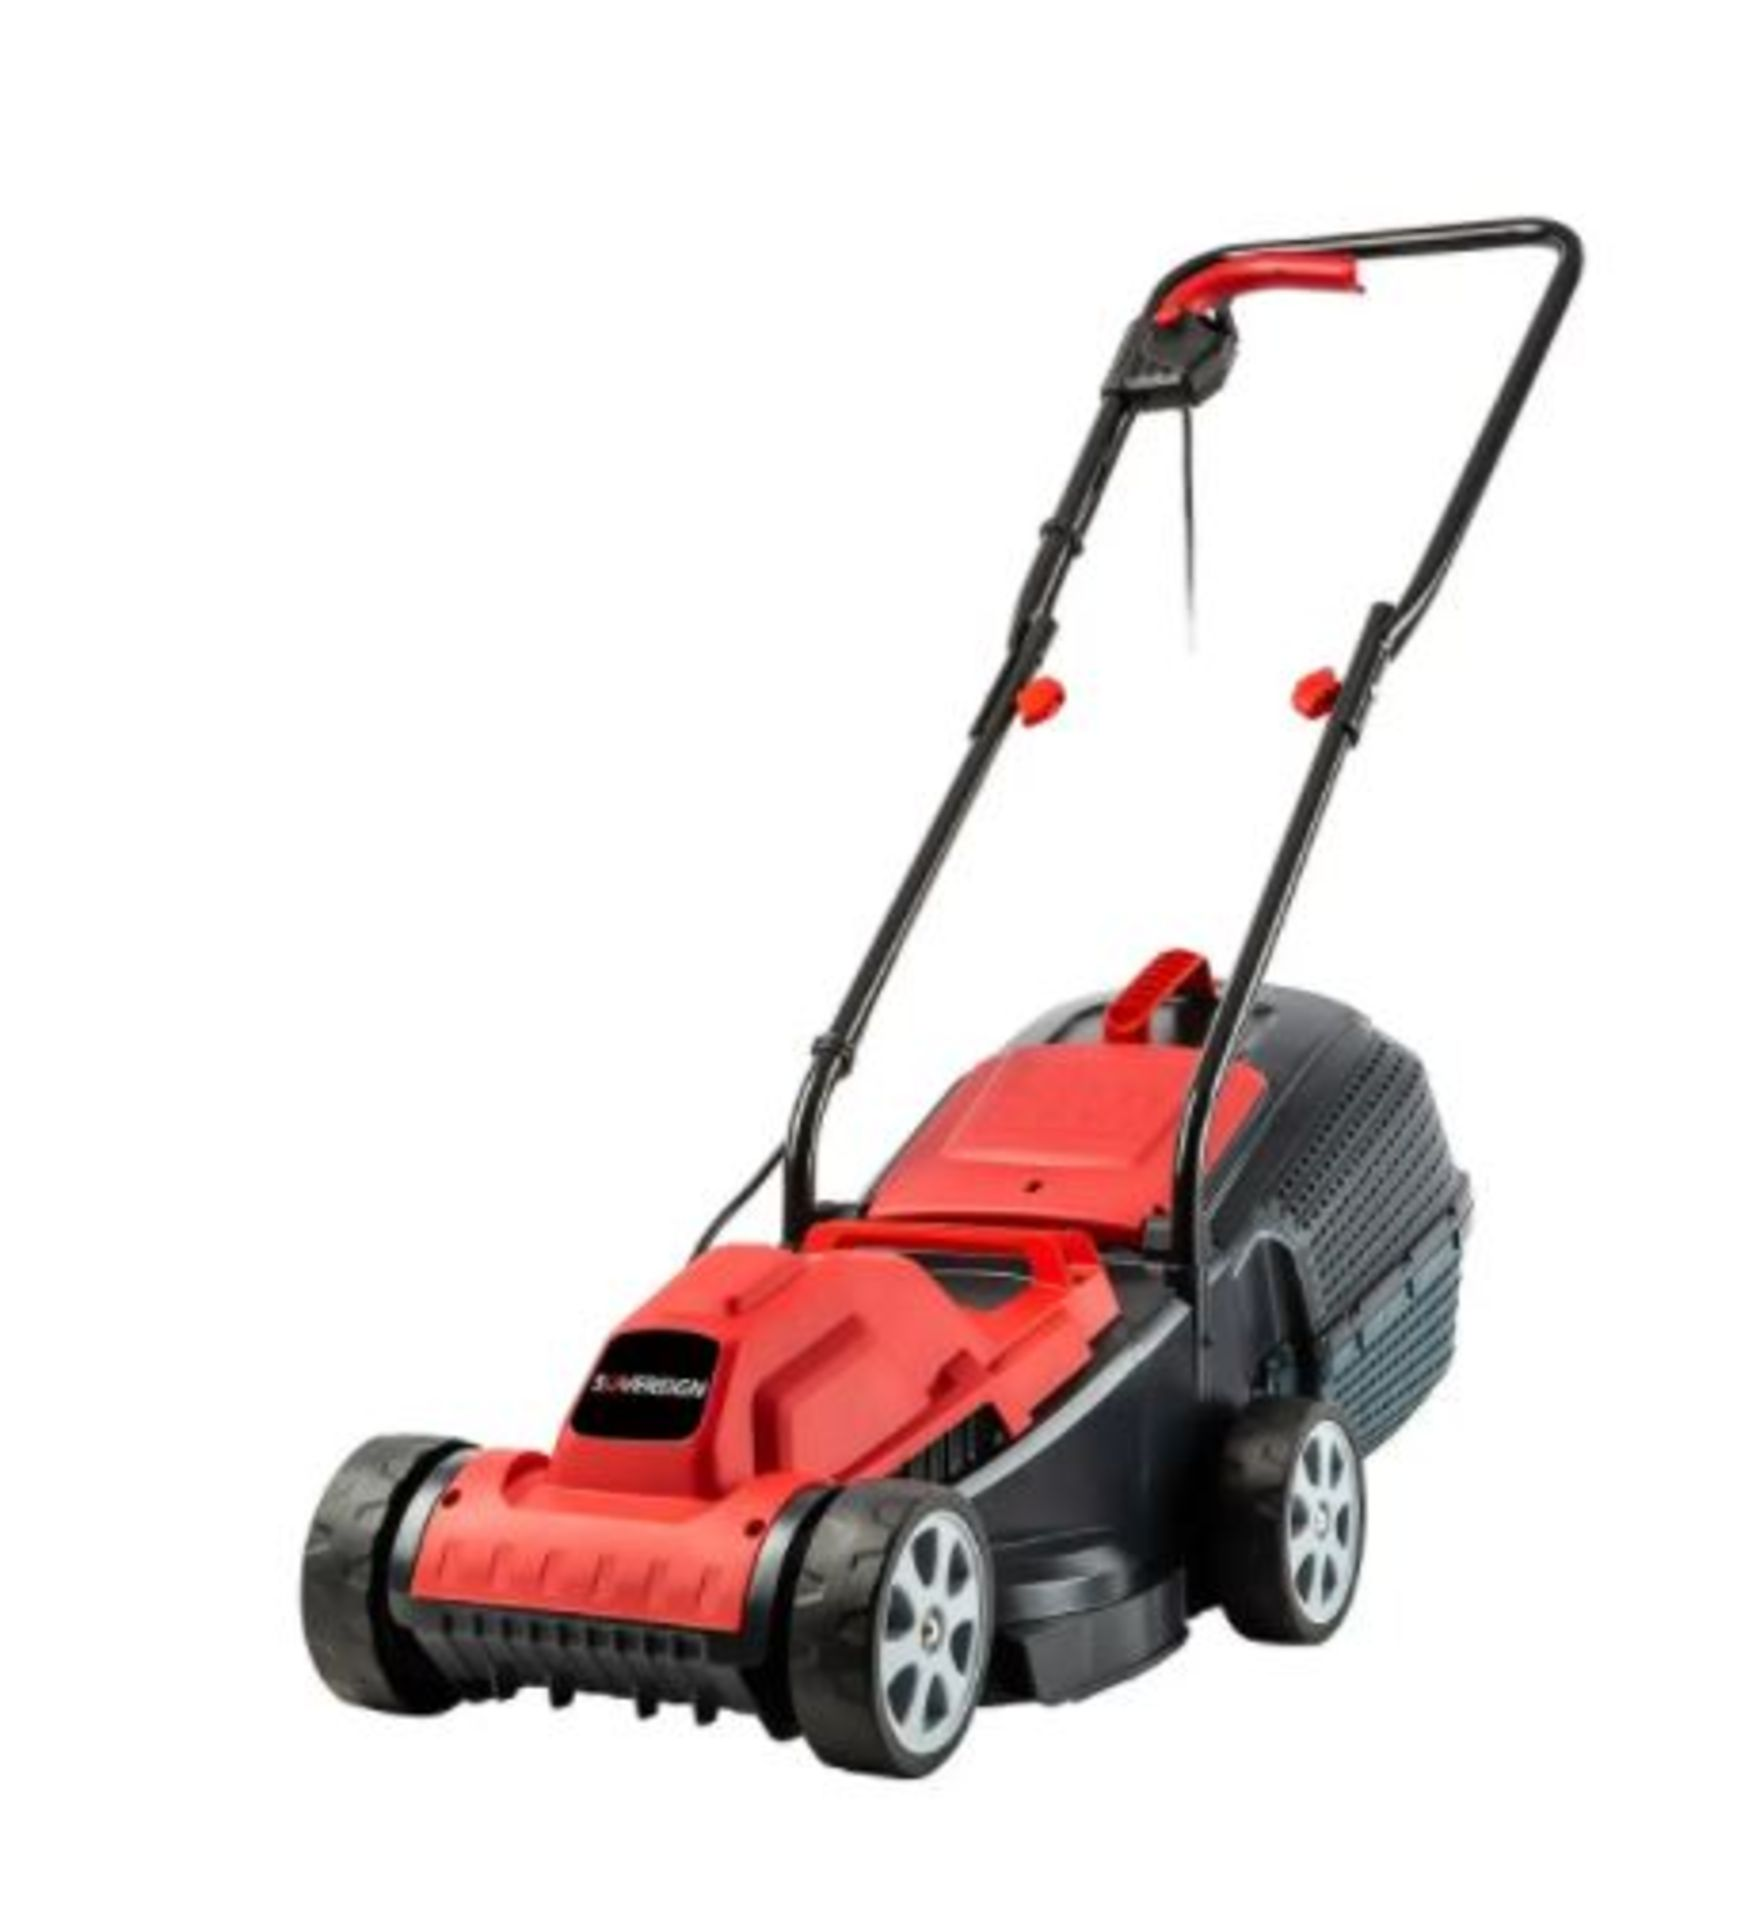 (P6) 1x Sovereign 32cm 1200W Electric Rotary Lawn Mower RRP £50. New, Sealed Unit.